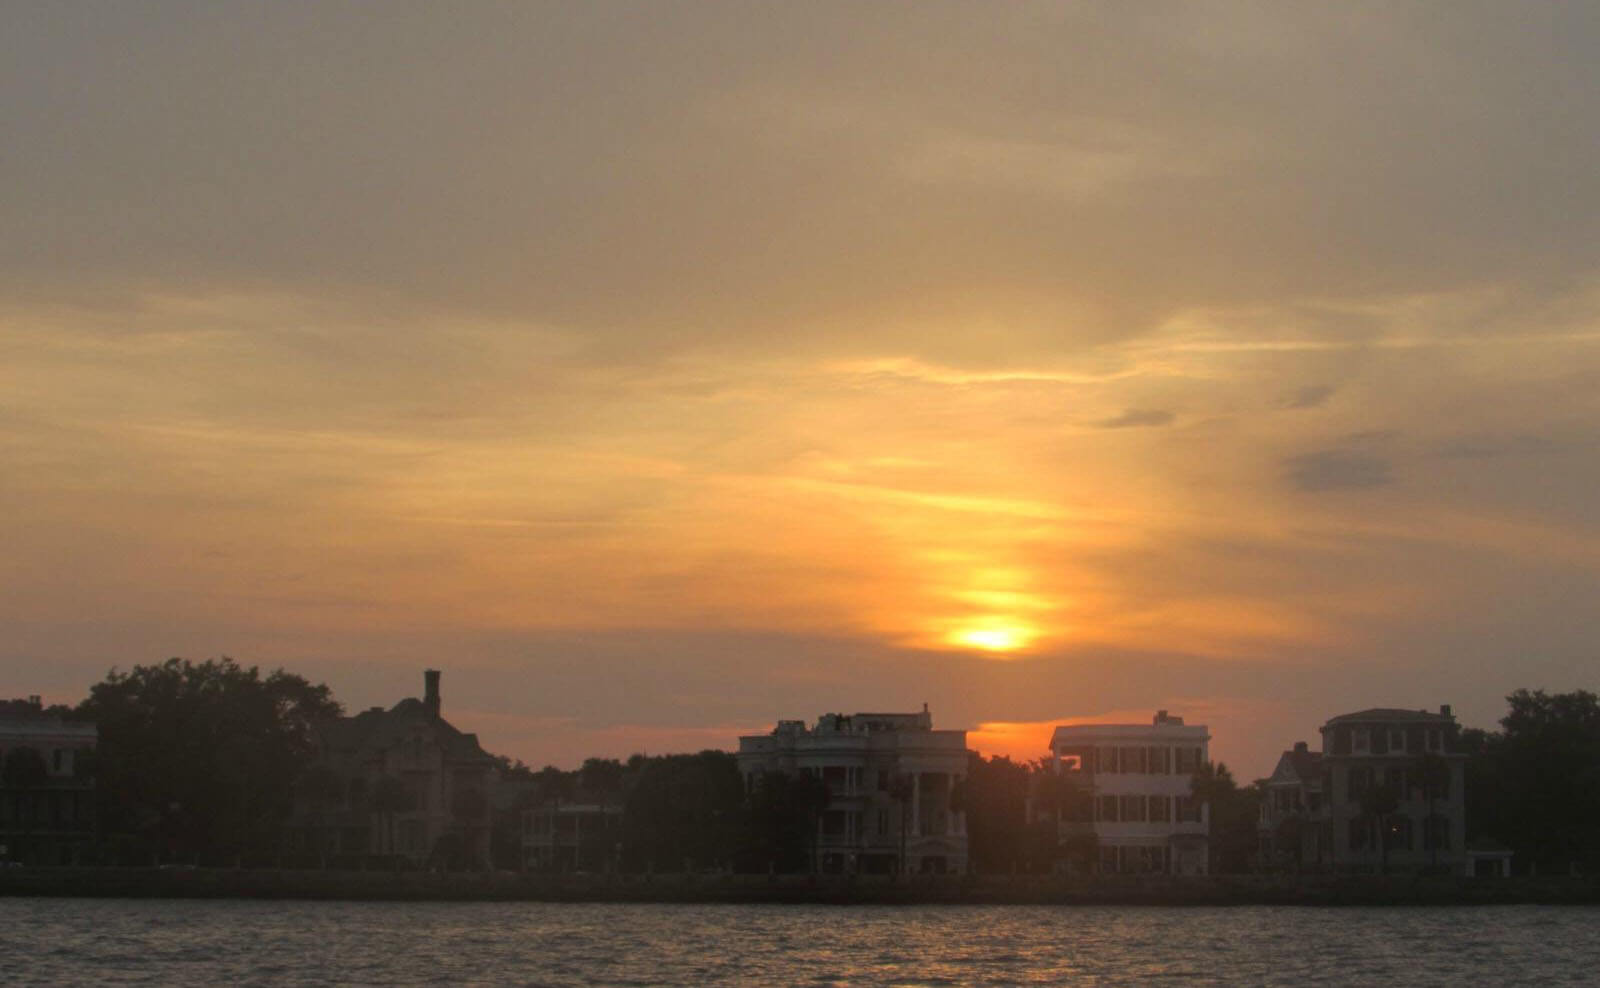 Beautiful sunset view from the harbor over the Battery in Charleston, SC